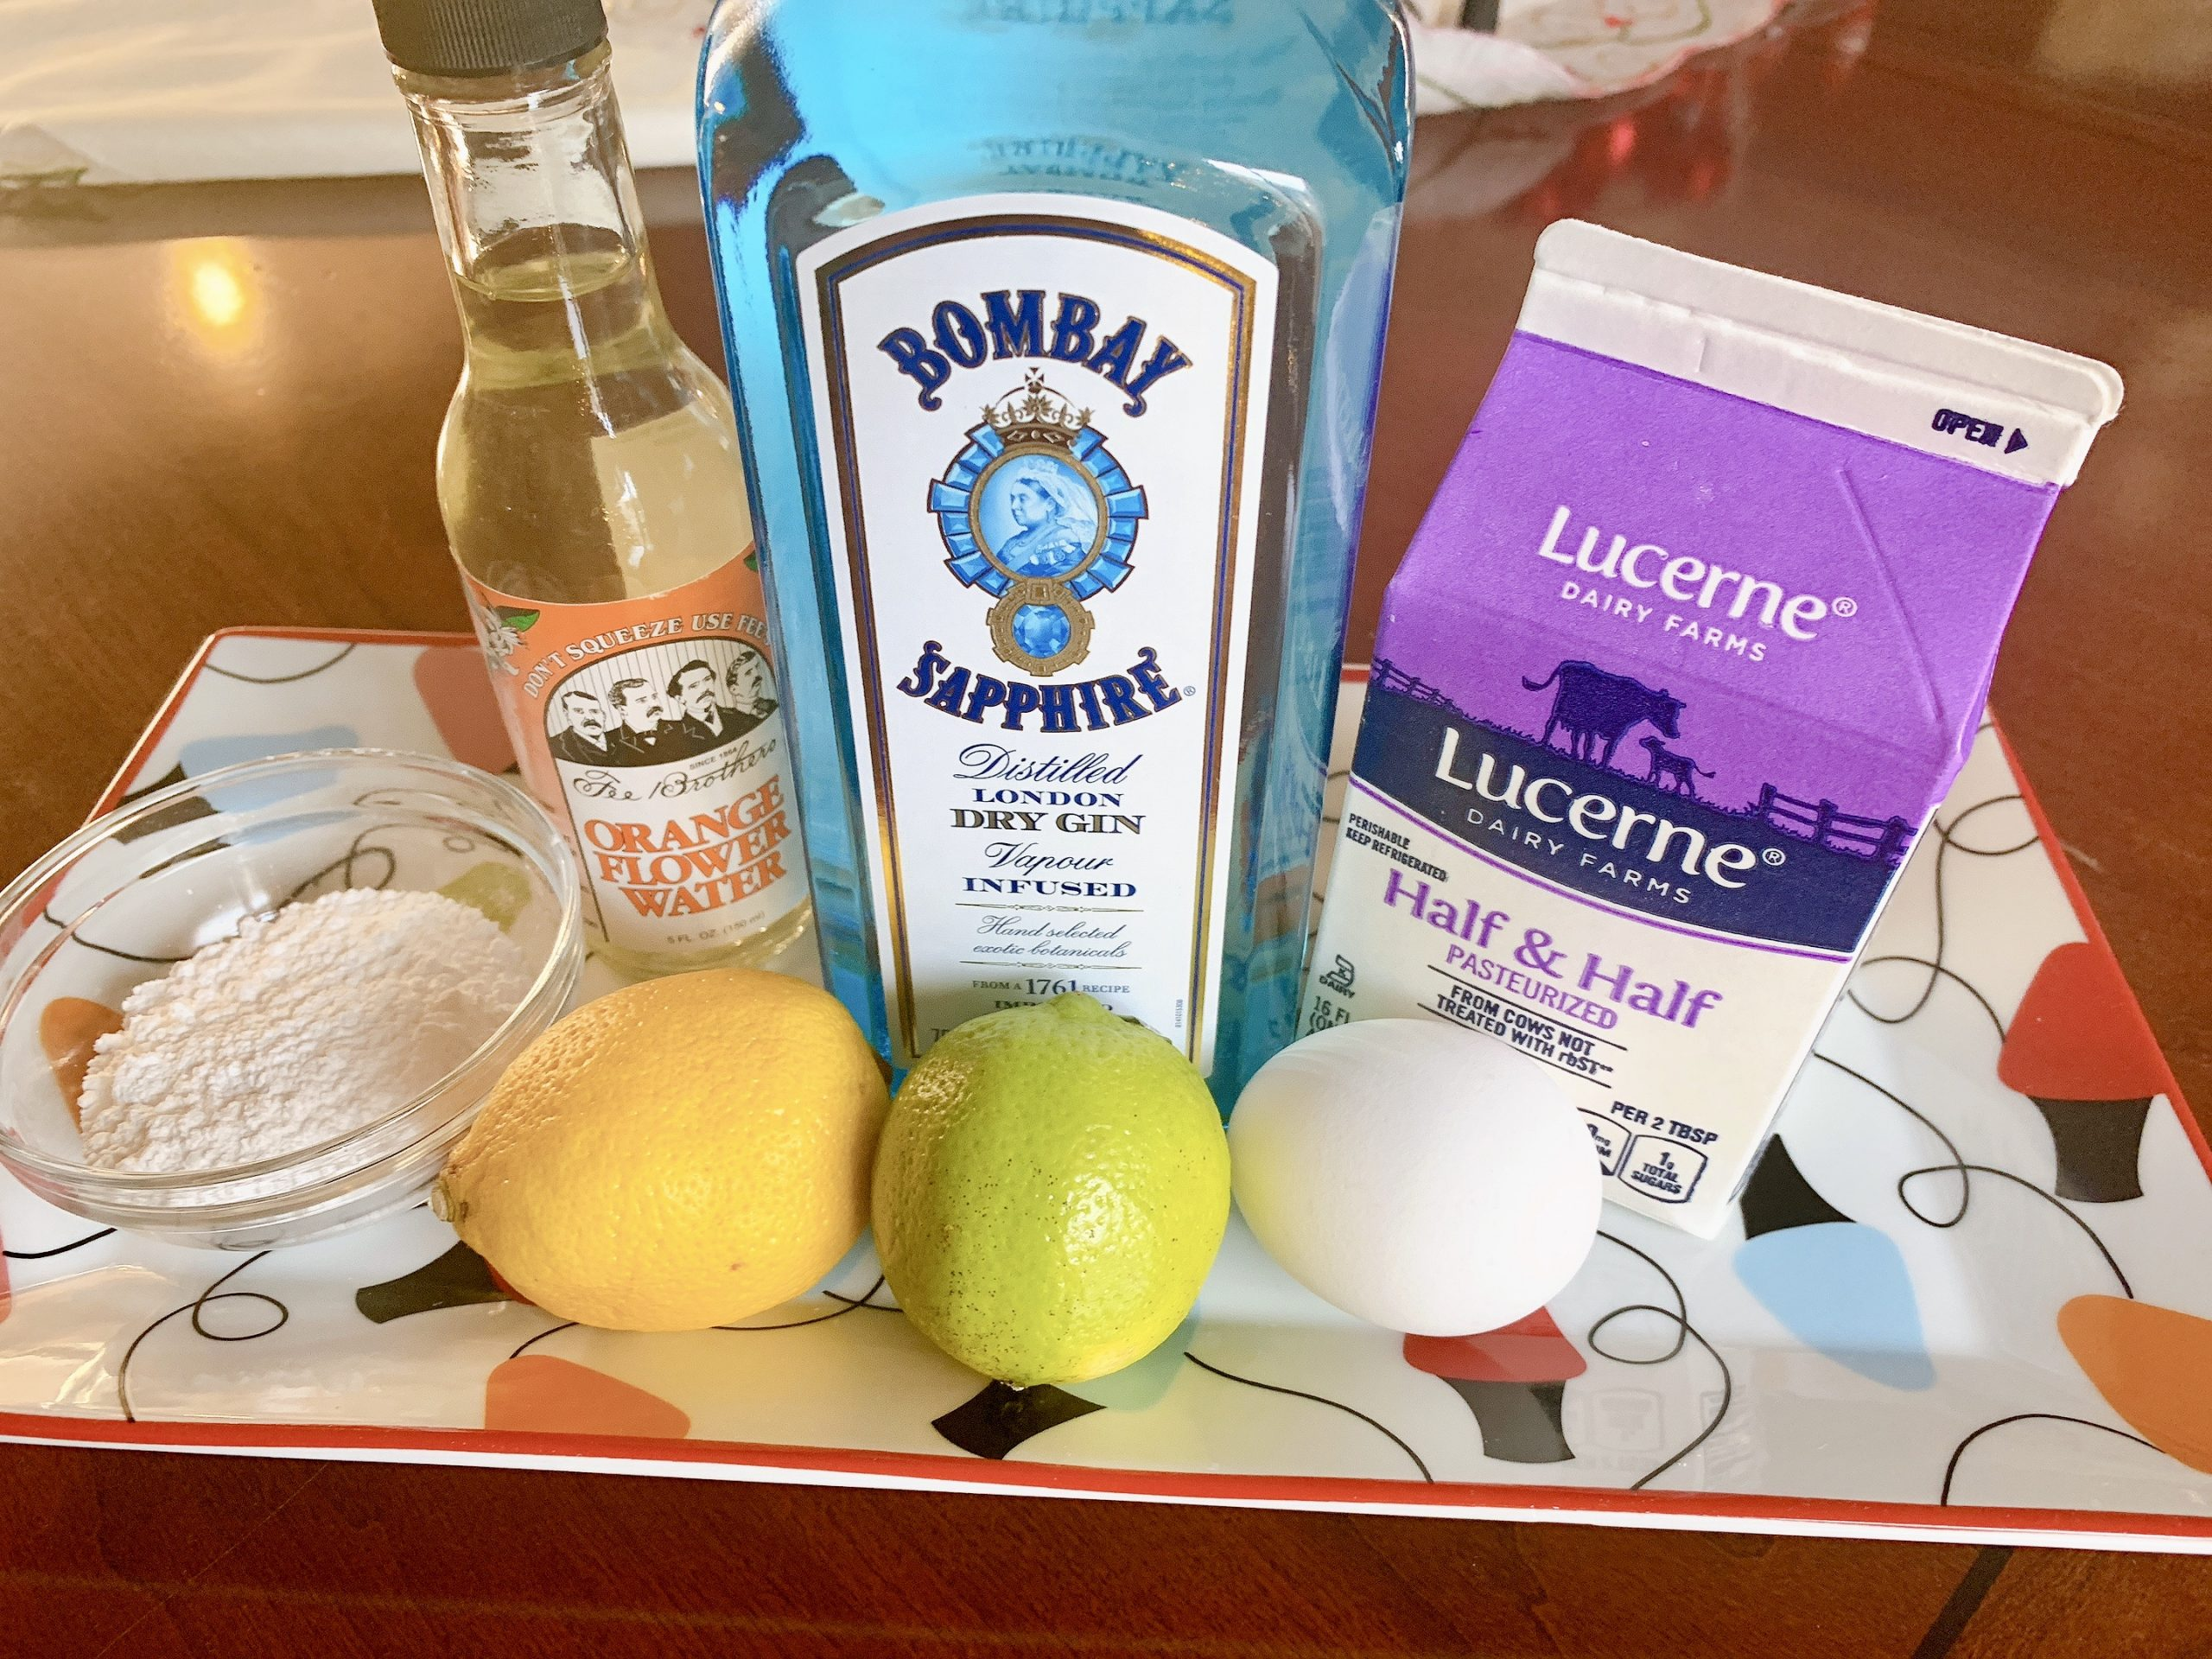 Bombay Sapphire Gin, half and half, egg, orange flower water, powdered sugar, lemon and lime ingredients to make a Holiday Gin Fizz.